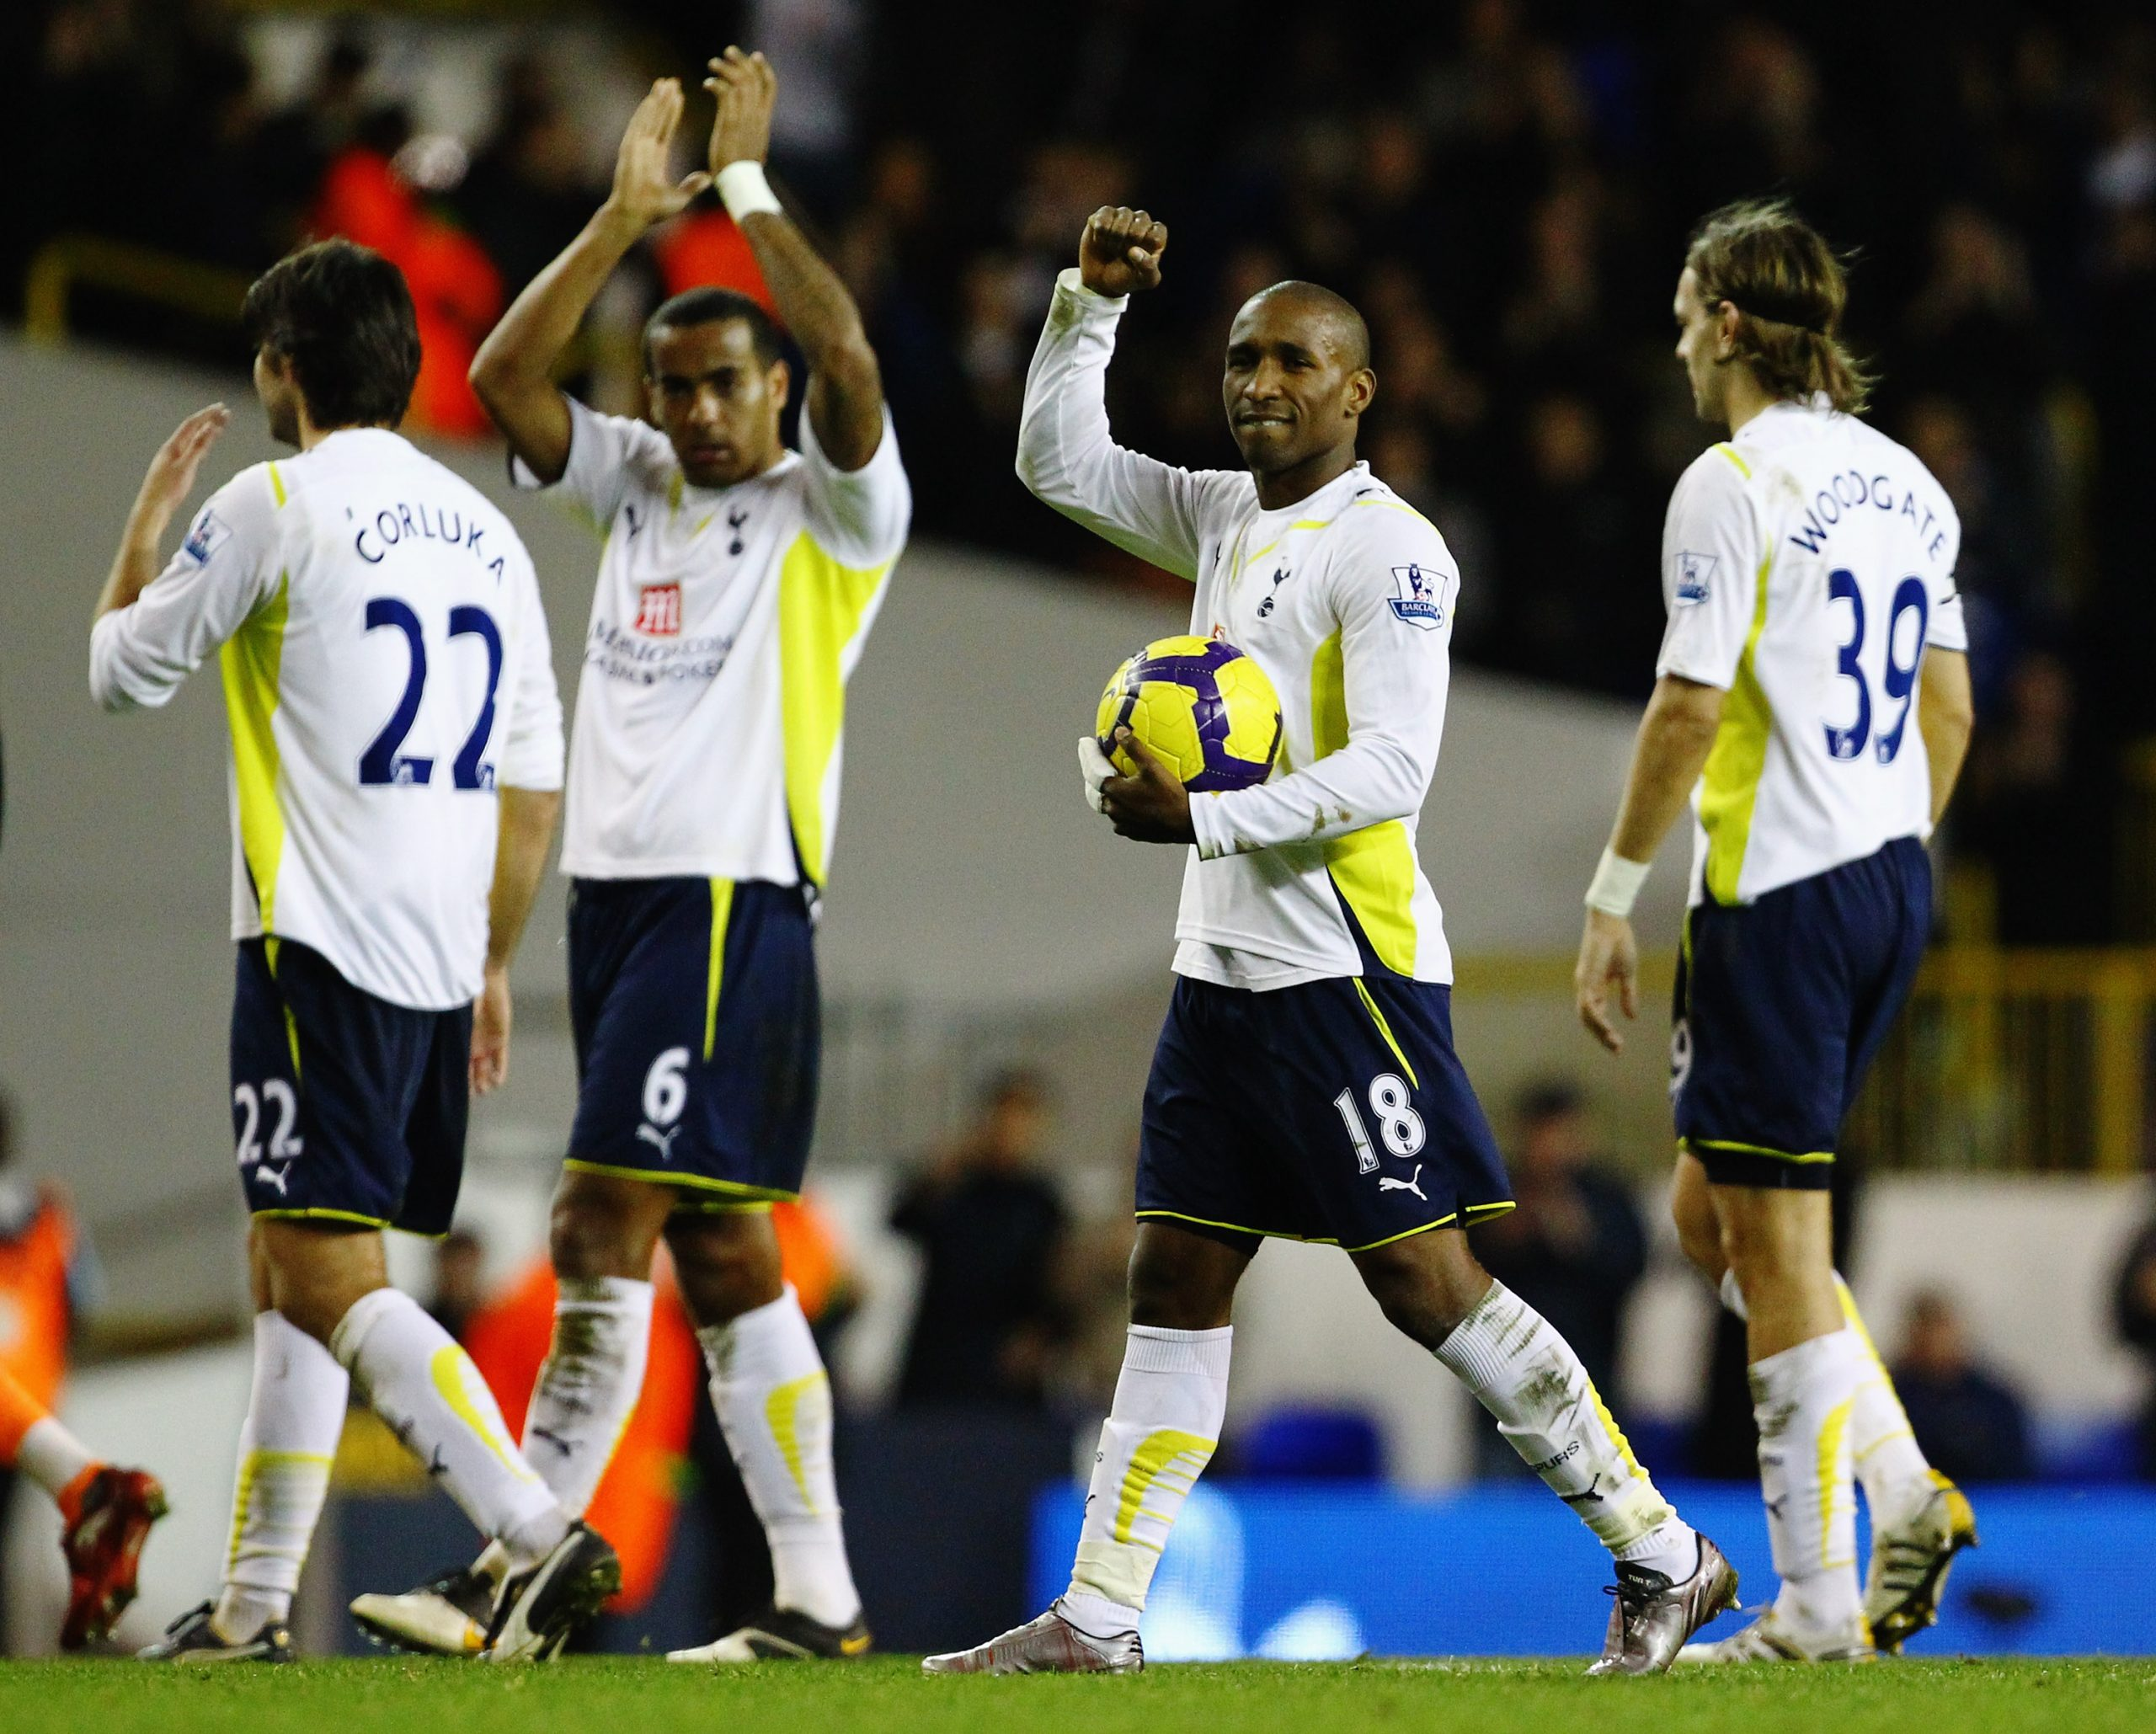 Defoe carries the match ball after scoring 5 past Chris Kirkland. (GETTY Images)